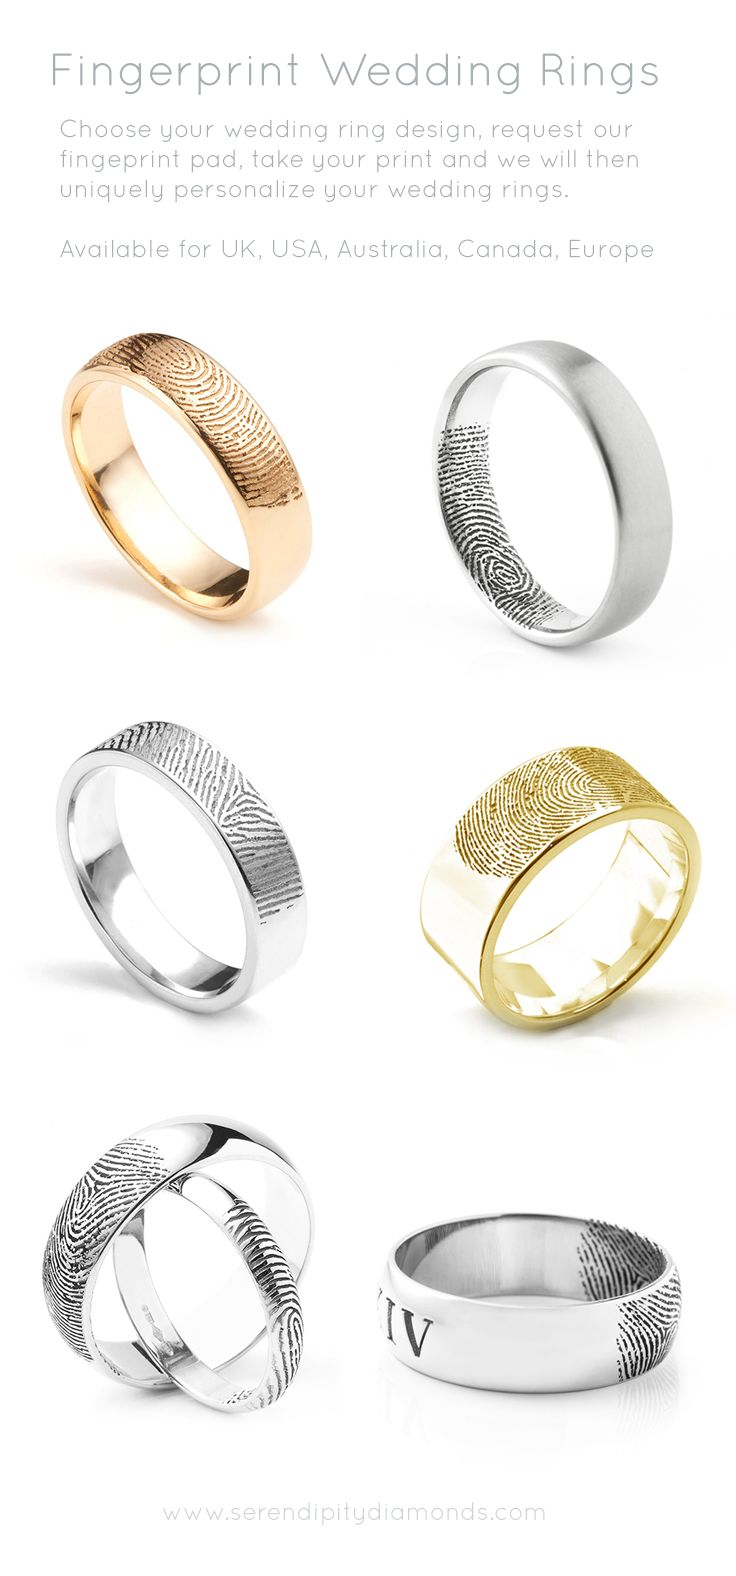 Choose your wedding ring design and contact us for your fingerprint pad. Read our guidance online for this unique service. Available to UK, USA, Australia, Canada and Europe.